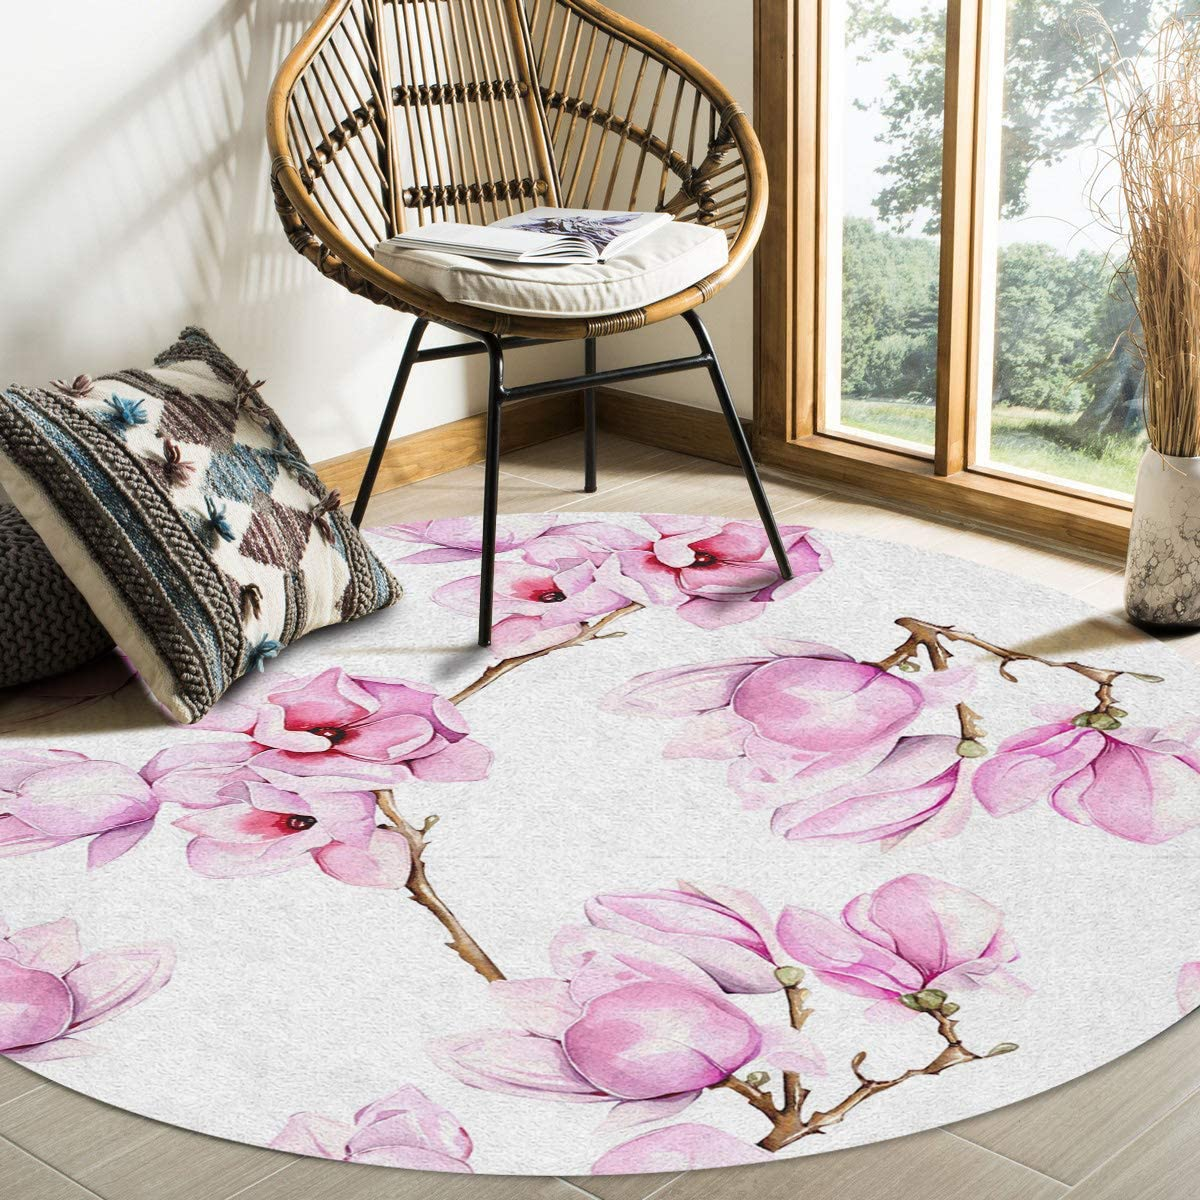 FAMILYDECOR Living Room Round Area Rug Decorate and Soft Be super welcome Tucson Mall Com 5ft